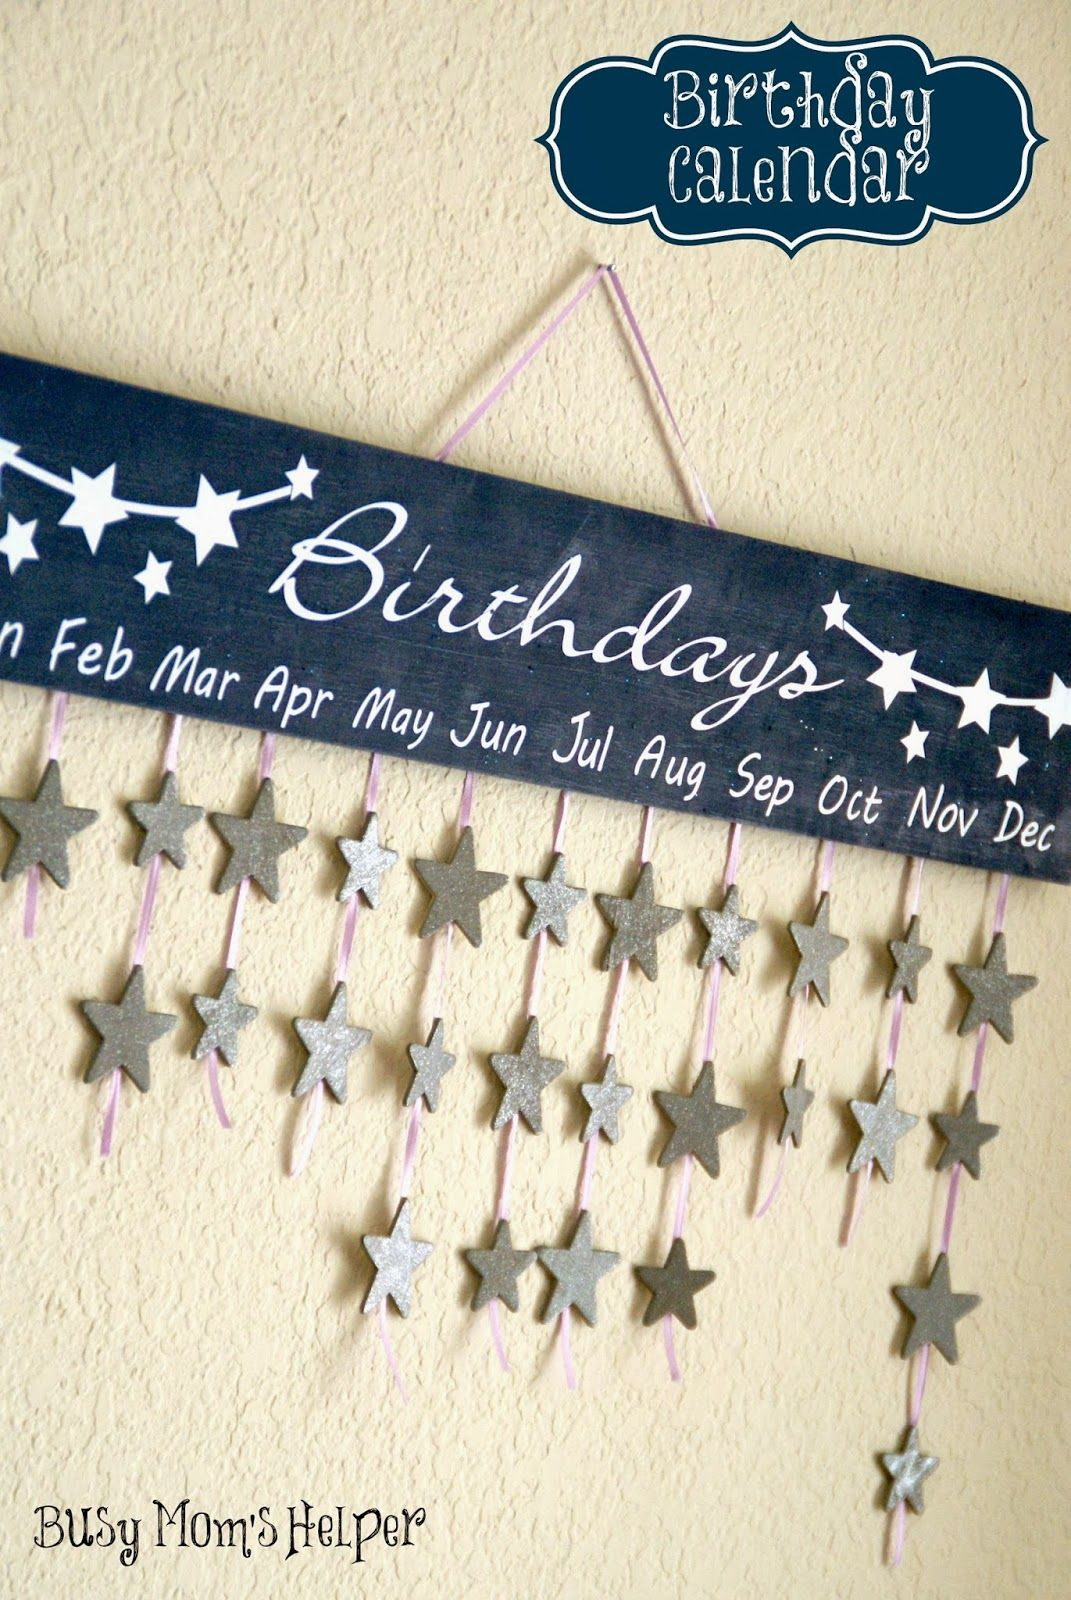 Birthday Calendar Ideas For Work : Birthday calendar diy